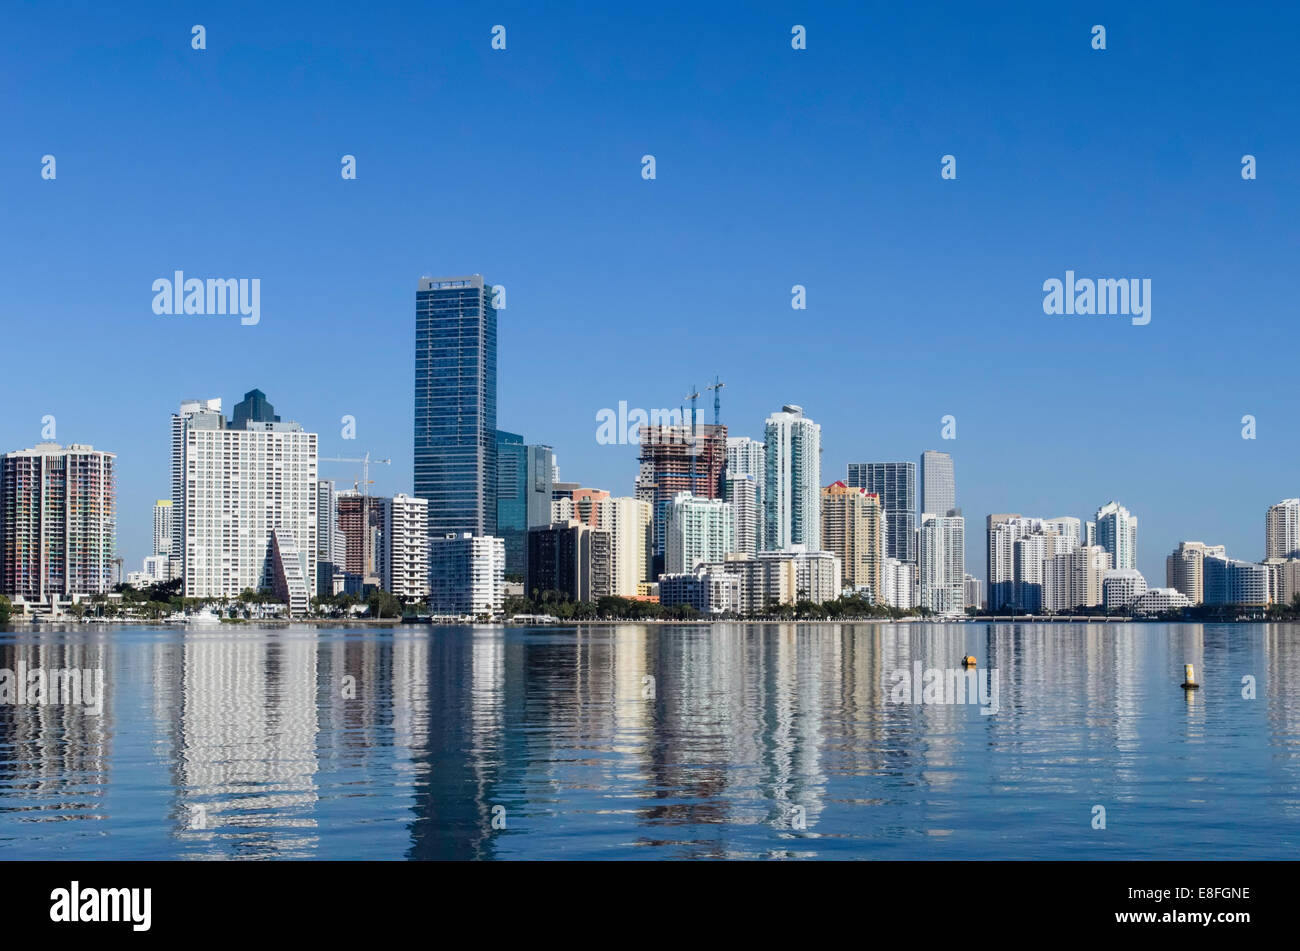 Urban skyline reflecting in water - Stock Image